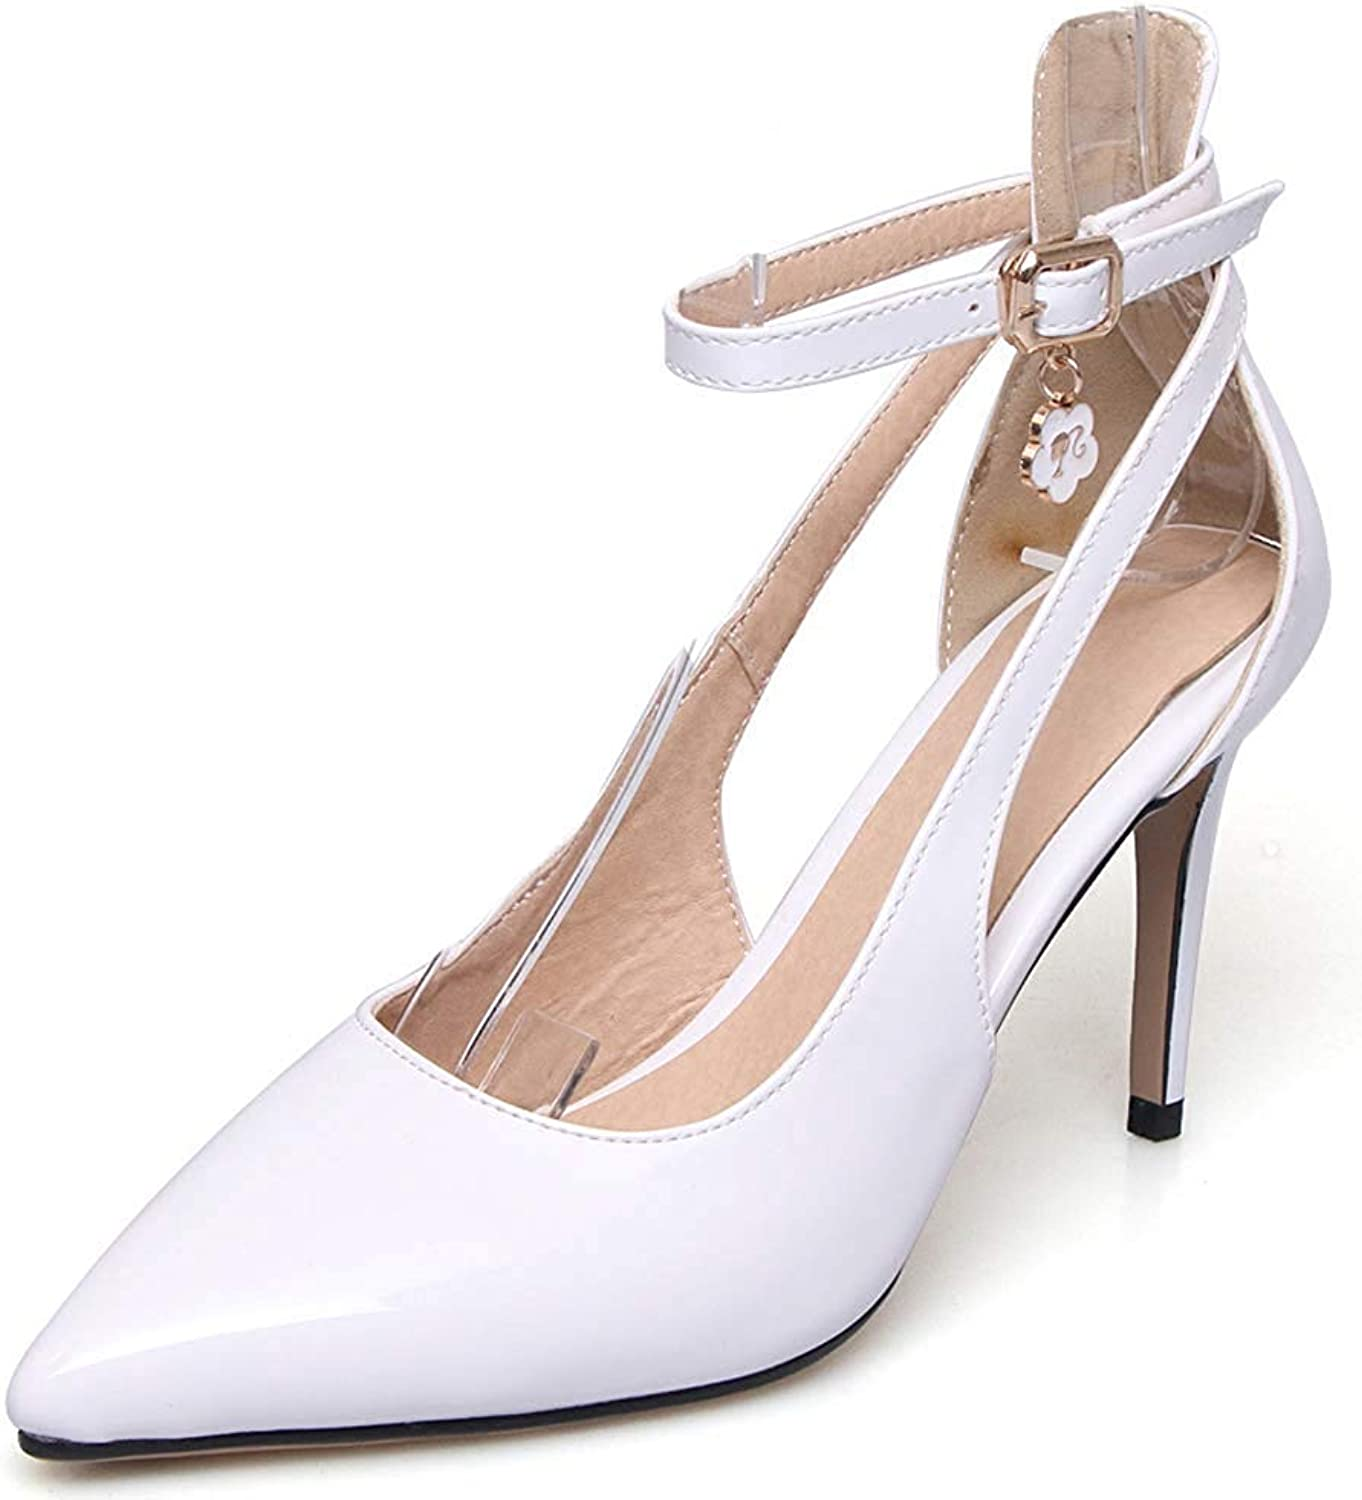 Lelehwhge Women's Formal Burnished Buckle Pointed Toe Ankle Strap Stilettos High Heel Pumps Sandals White 8 M US